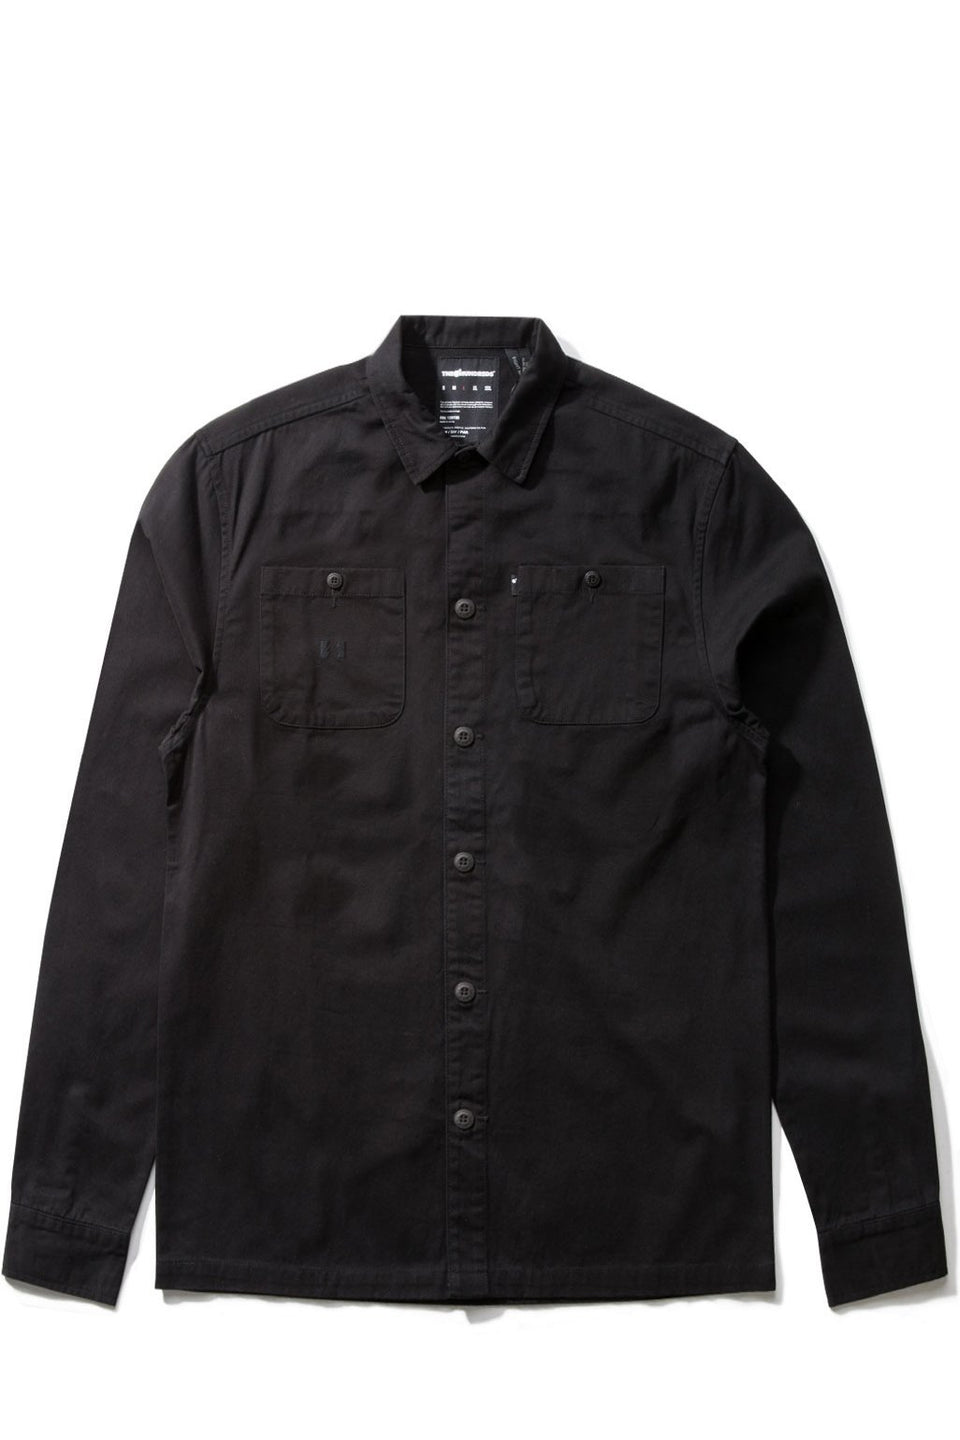 Labor Button-Up-TOPS-The Hundreds UK